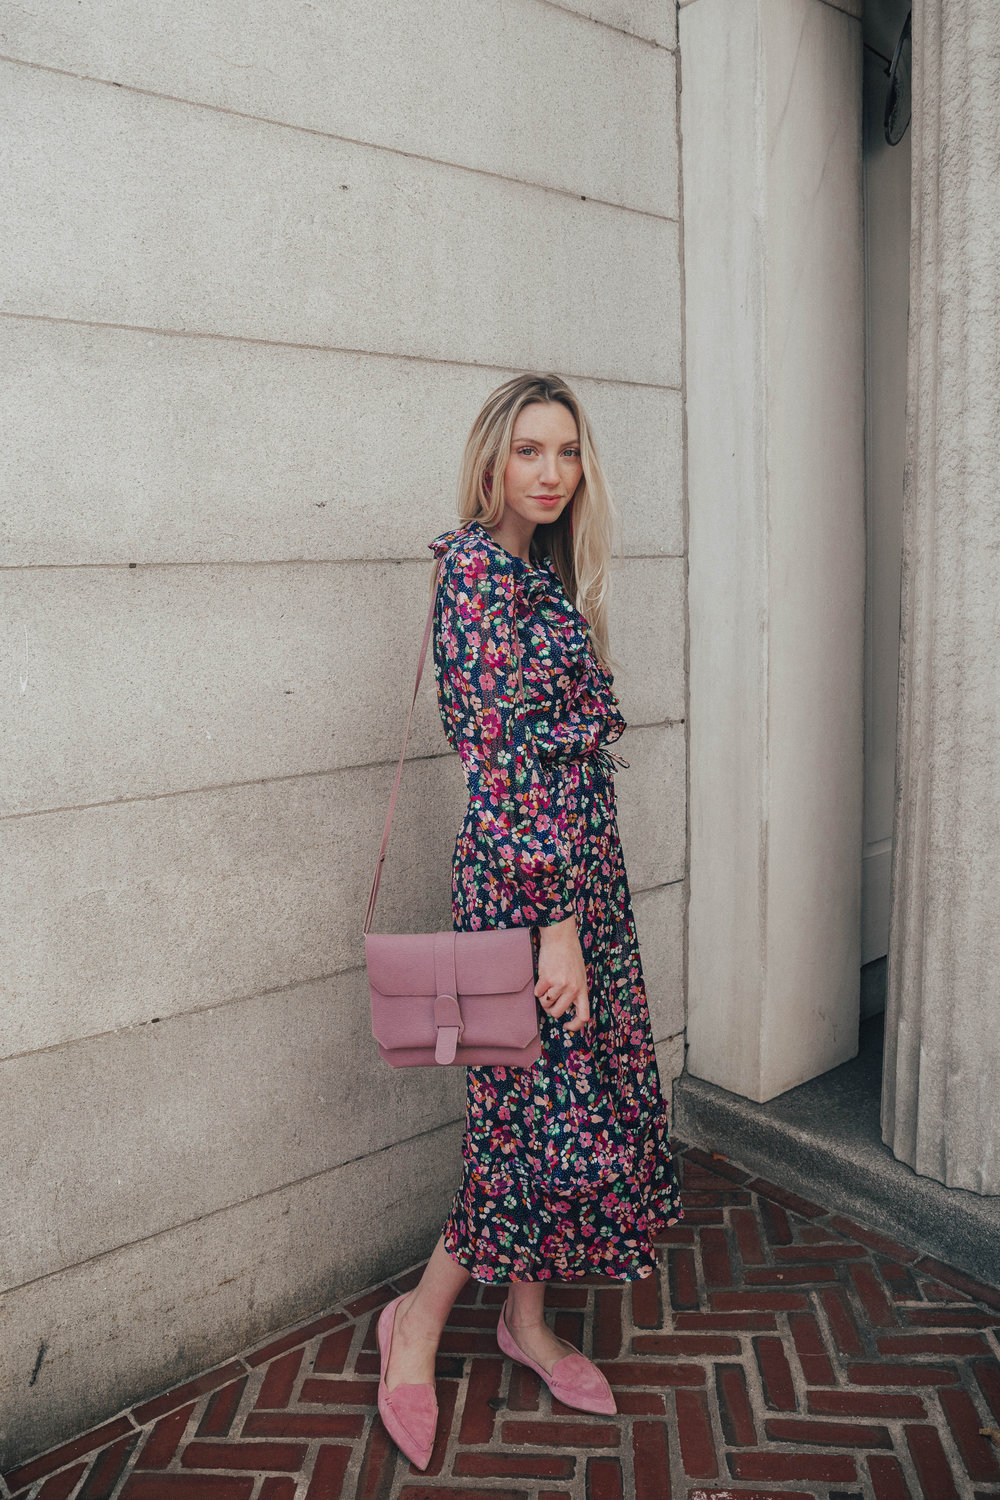 & Other Stories Floral Print Midi Dress | @maevestier